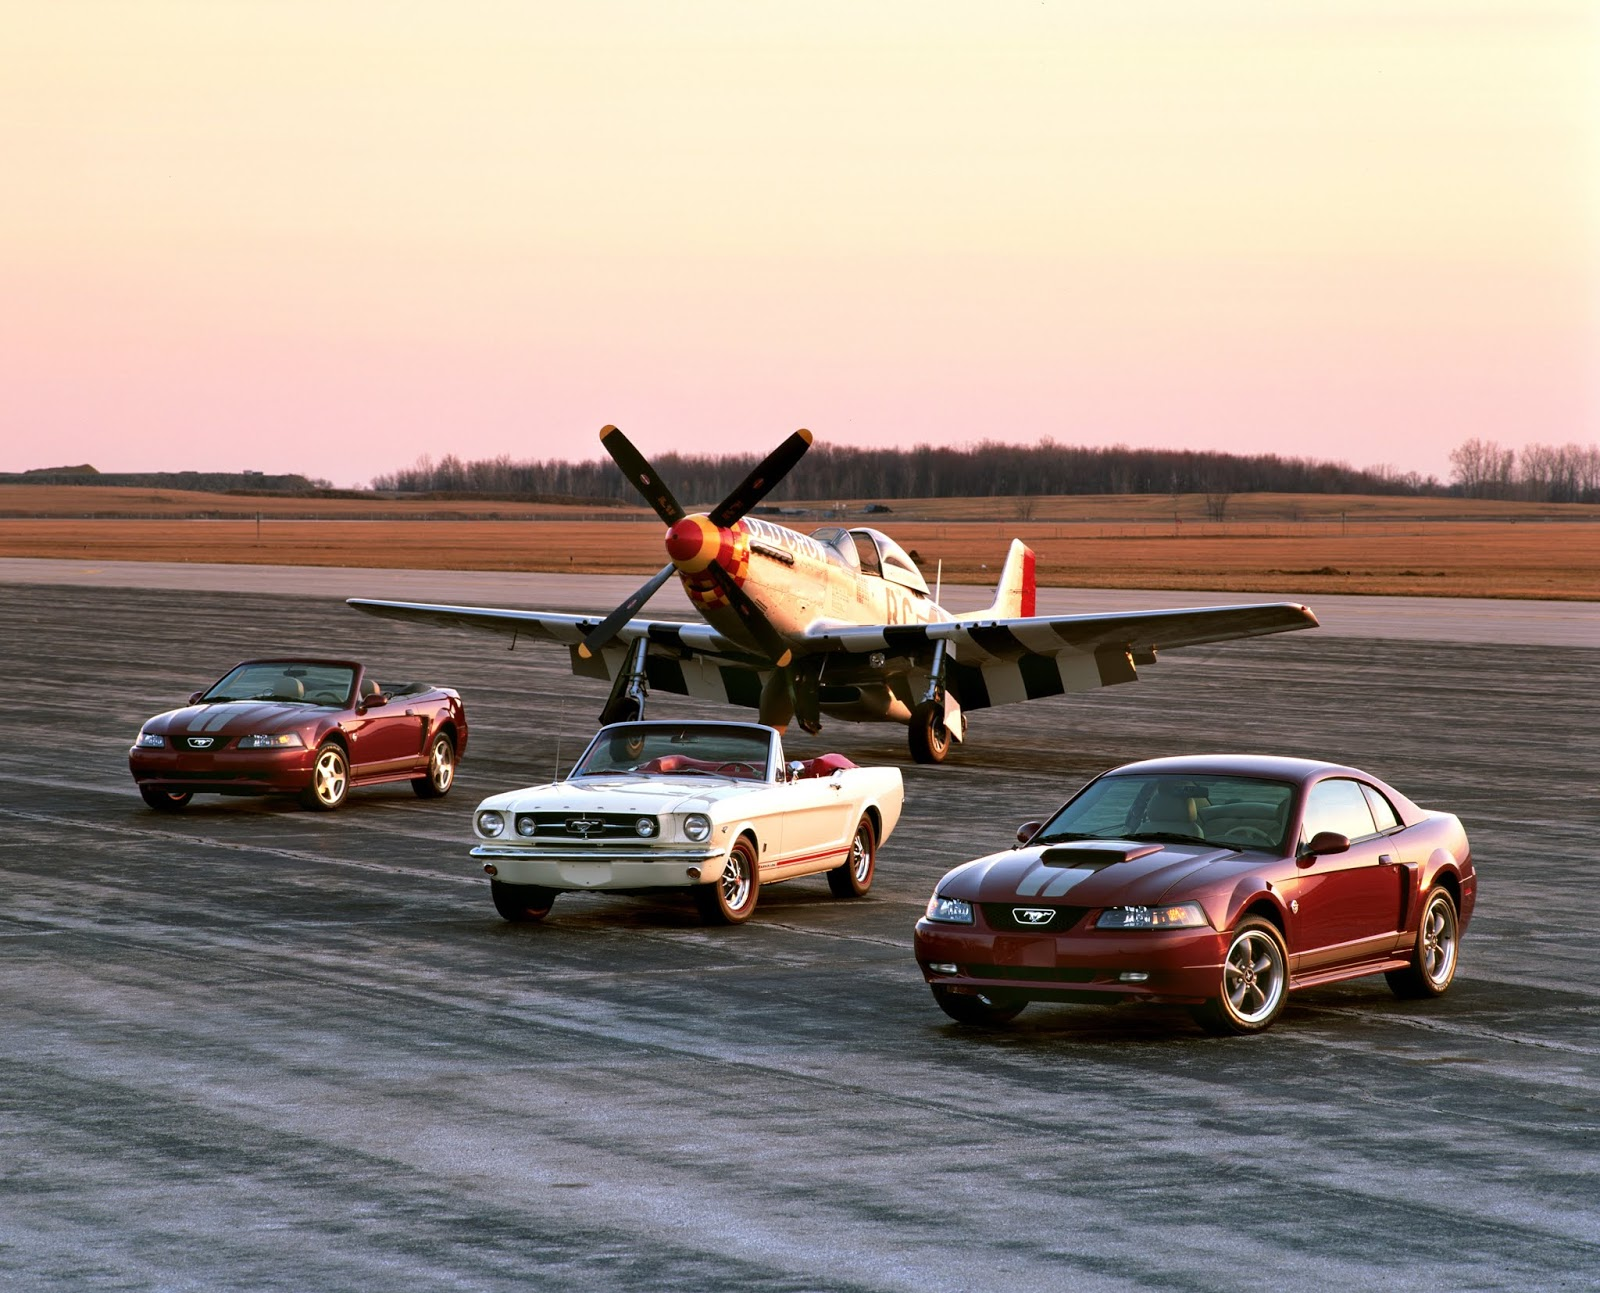 2004 Ford Mustang Anniversary edition and 1965 Mustang with P 51 1 Πώς γιορτάζει η Mustang τα 55 της χρόνια;